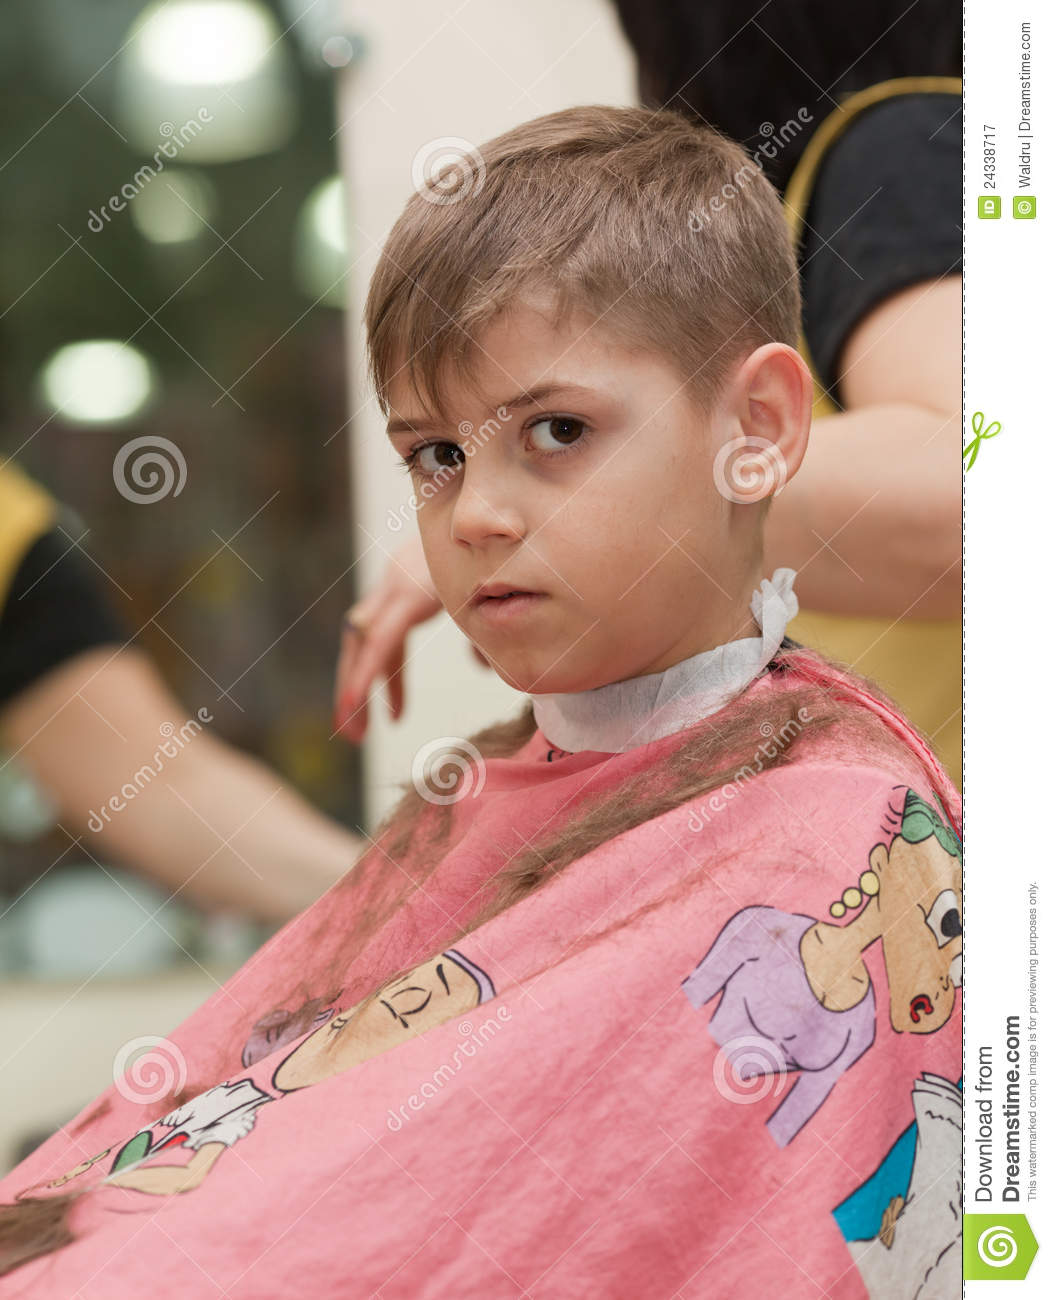 Boy Hair Images Download: Boy Getting A Haircut Stock Image. Image Of Trim, Person